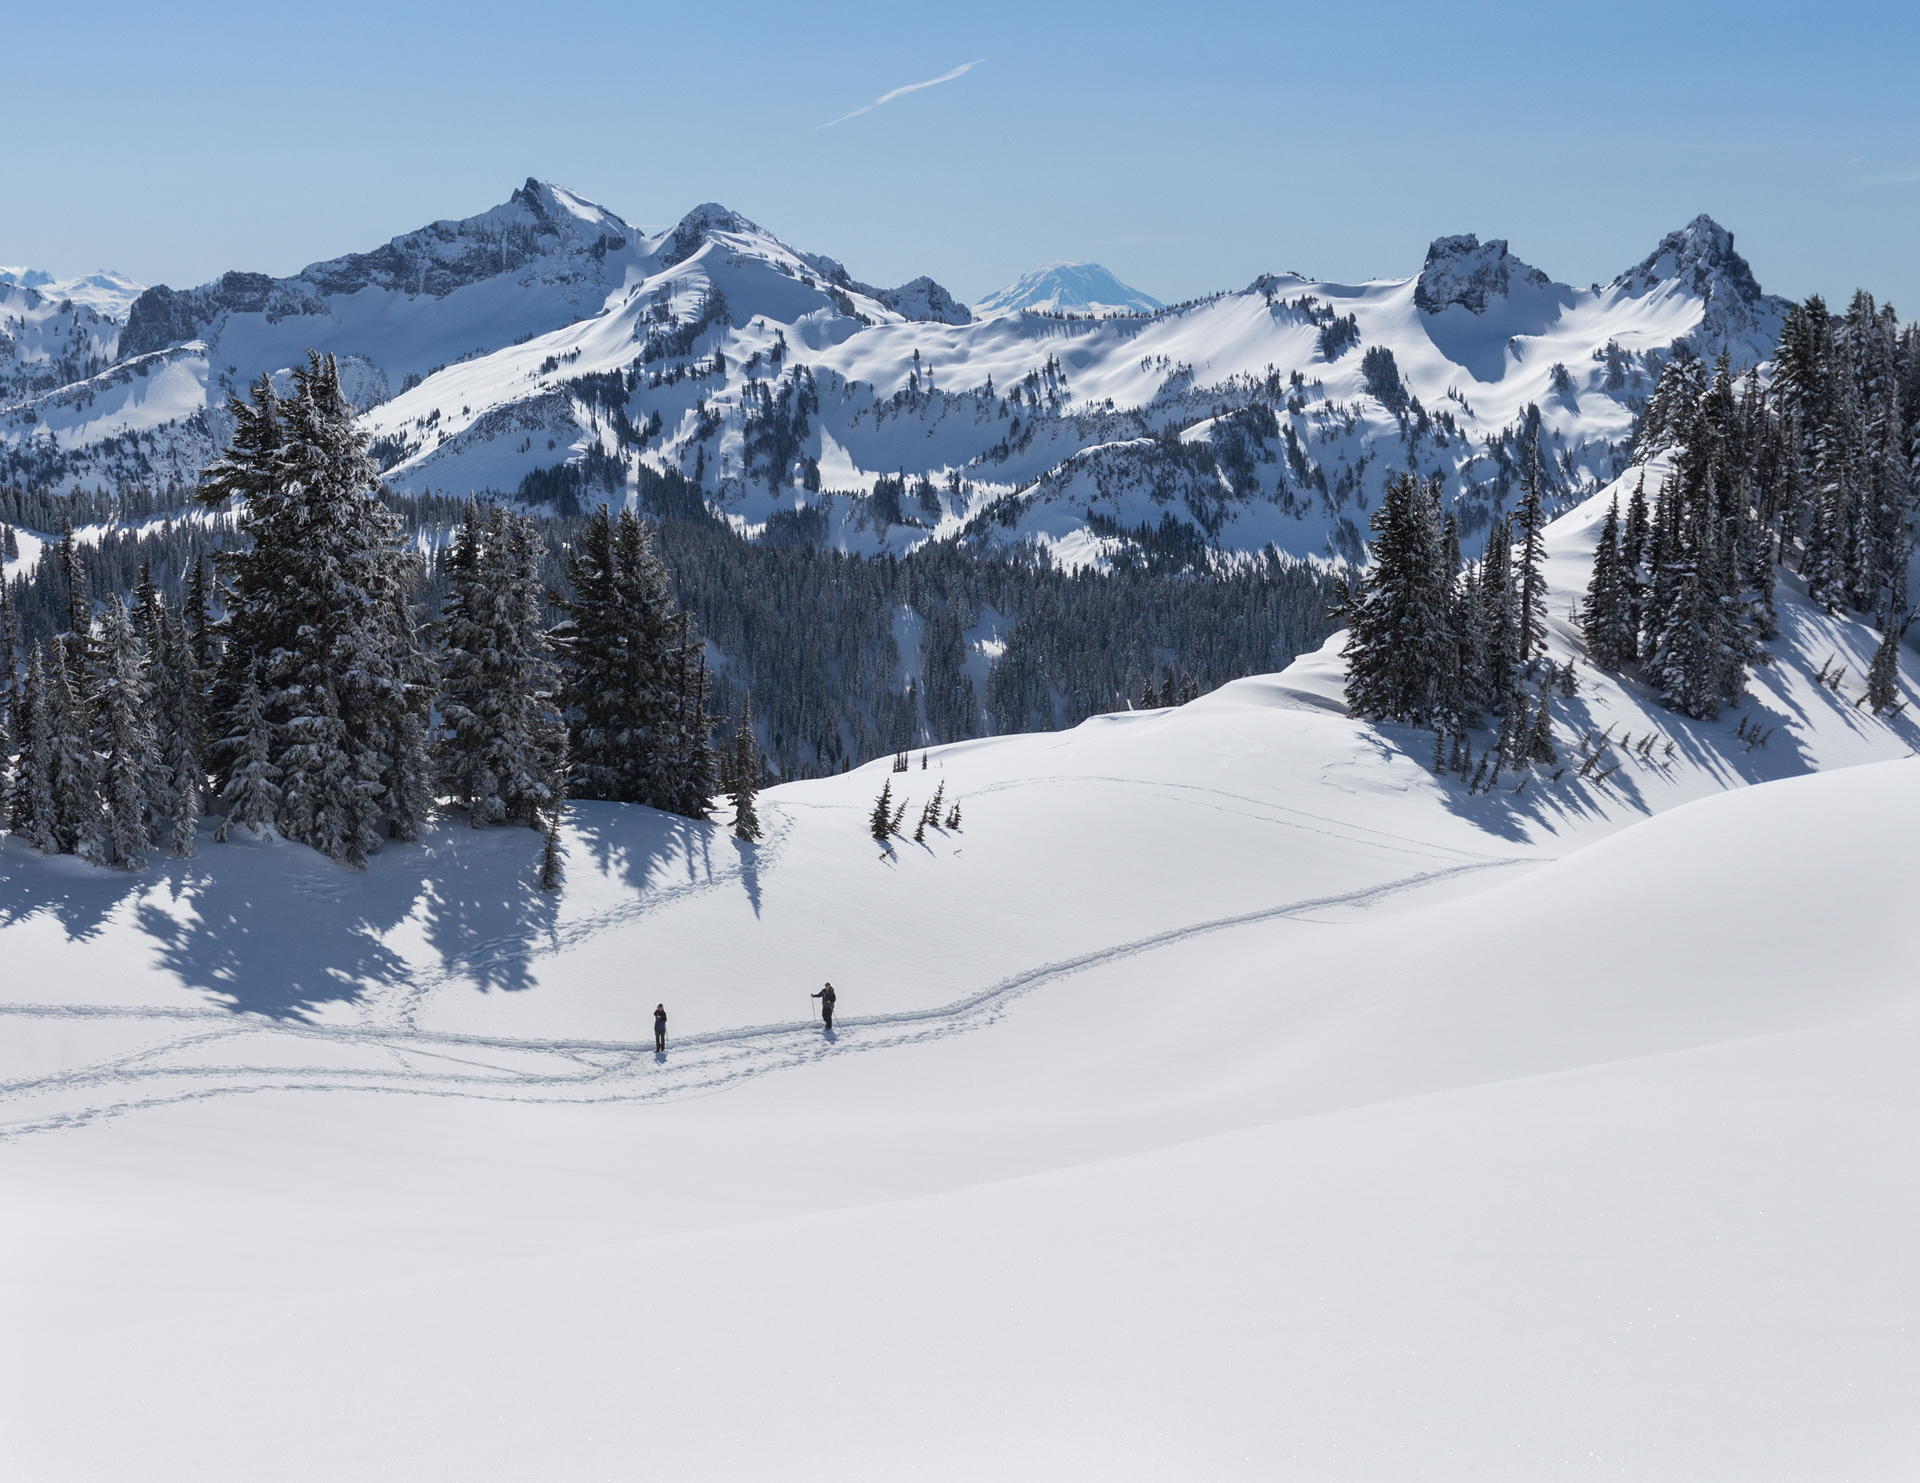 Snowshoeing/skiing in the Paradise area of Mt. Rainier National Park